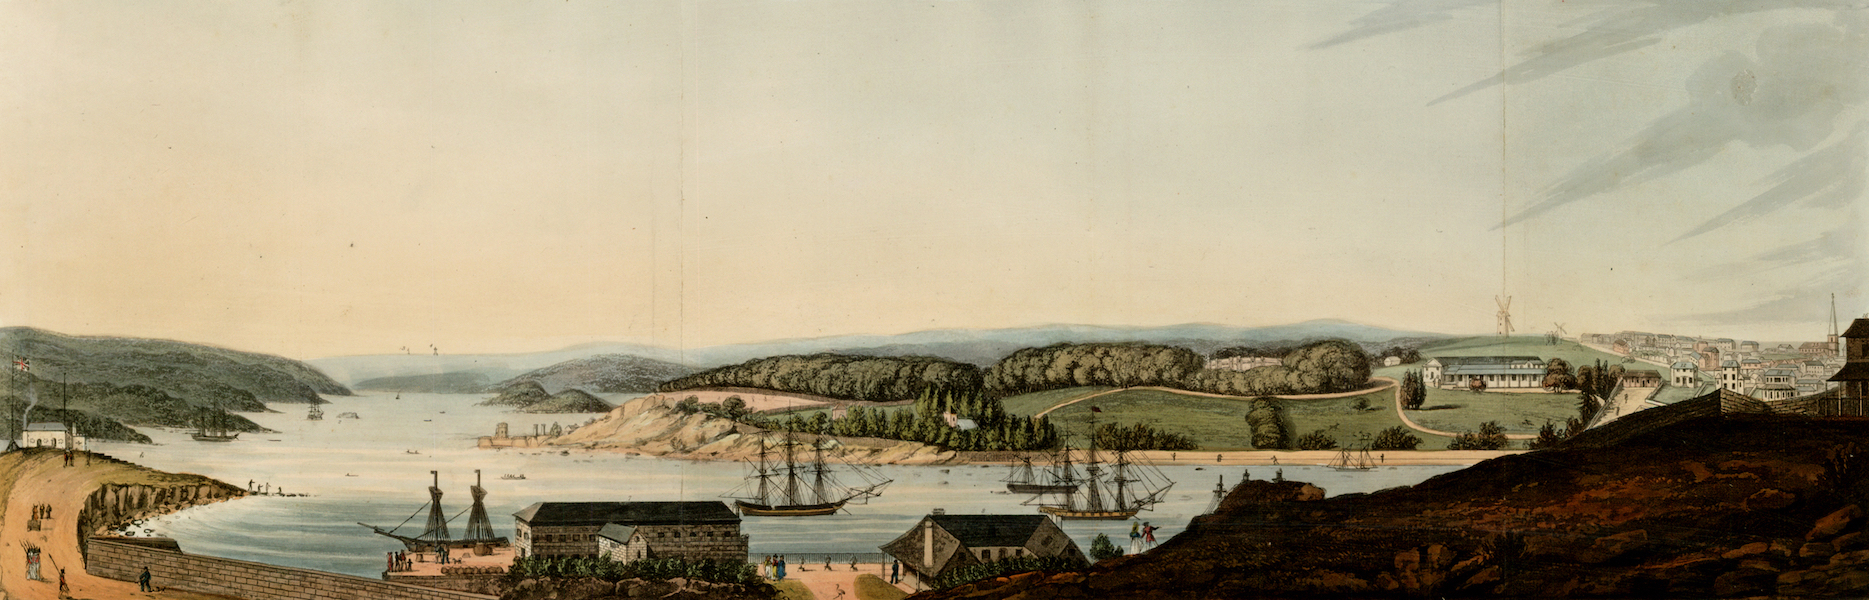 An Account of the State of Agriculture & Grazing in New South Wales - View of Port Jackson and part of the Town of Sydney (1826)